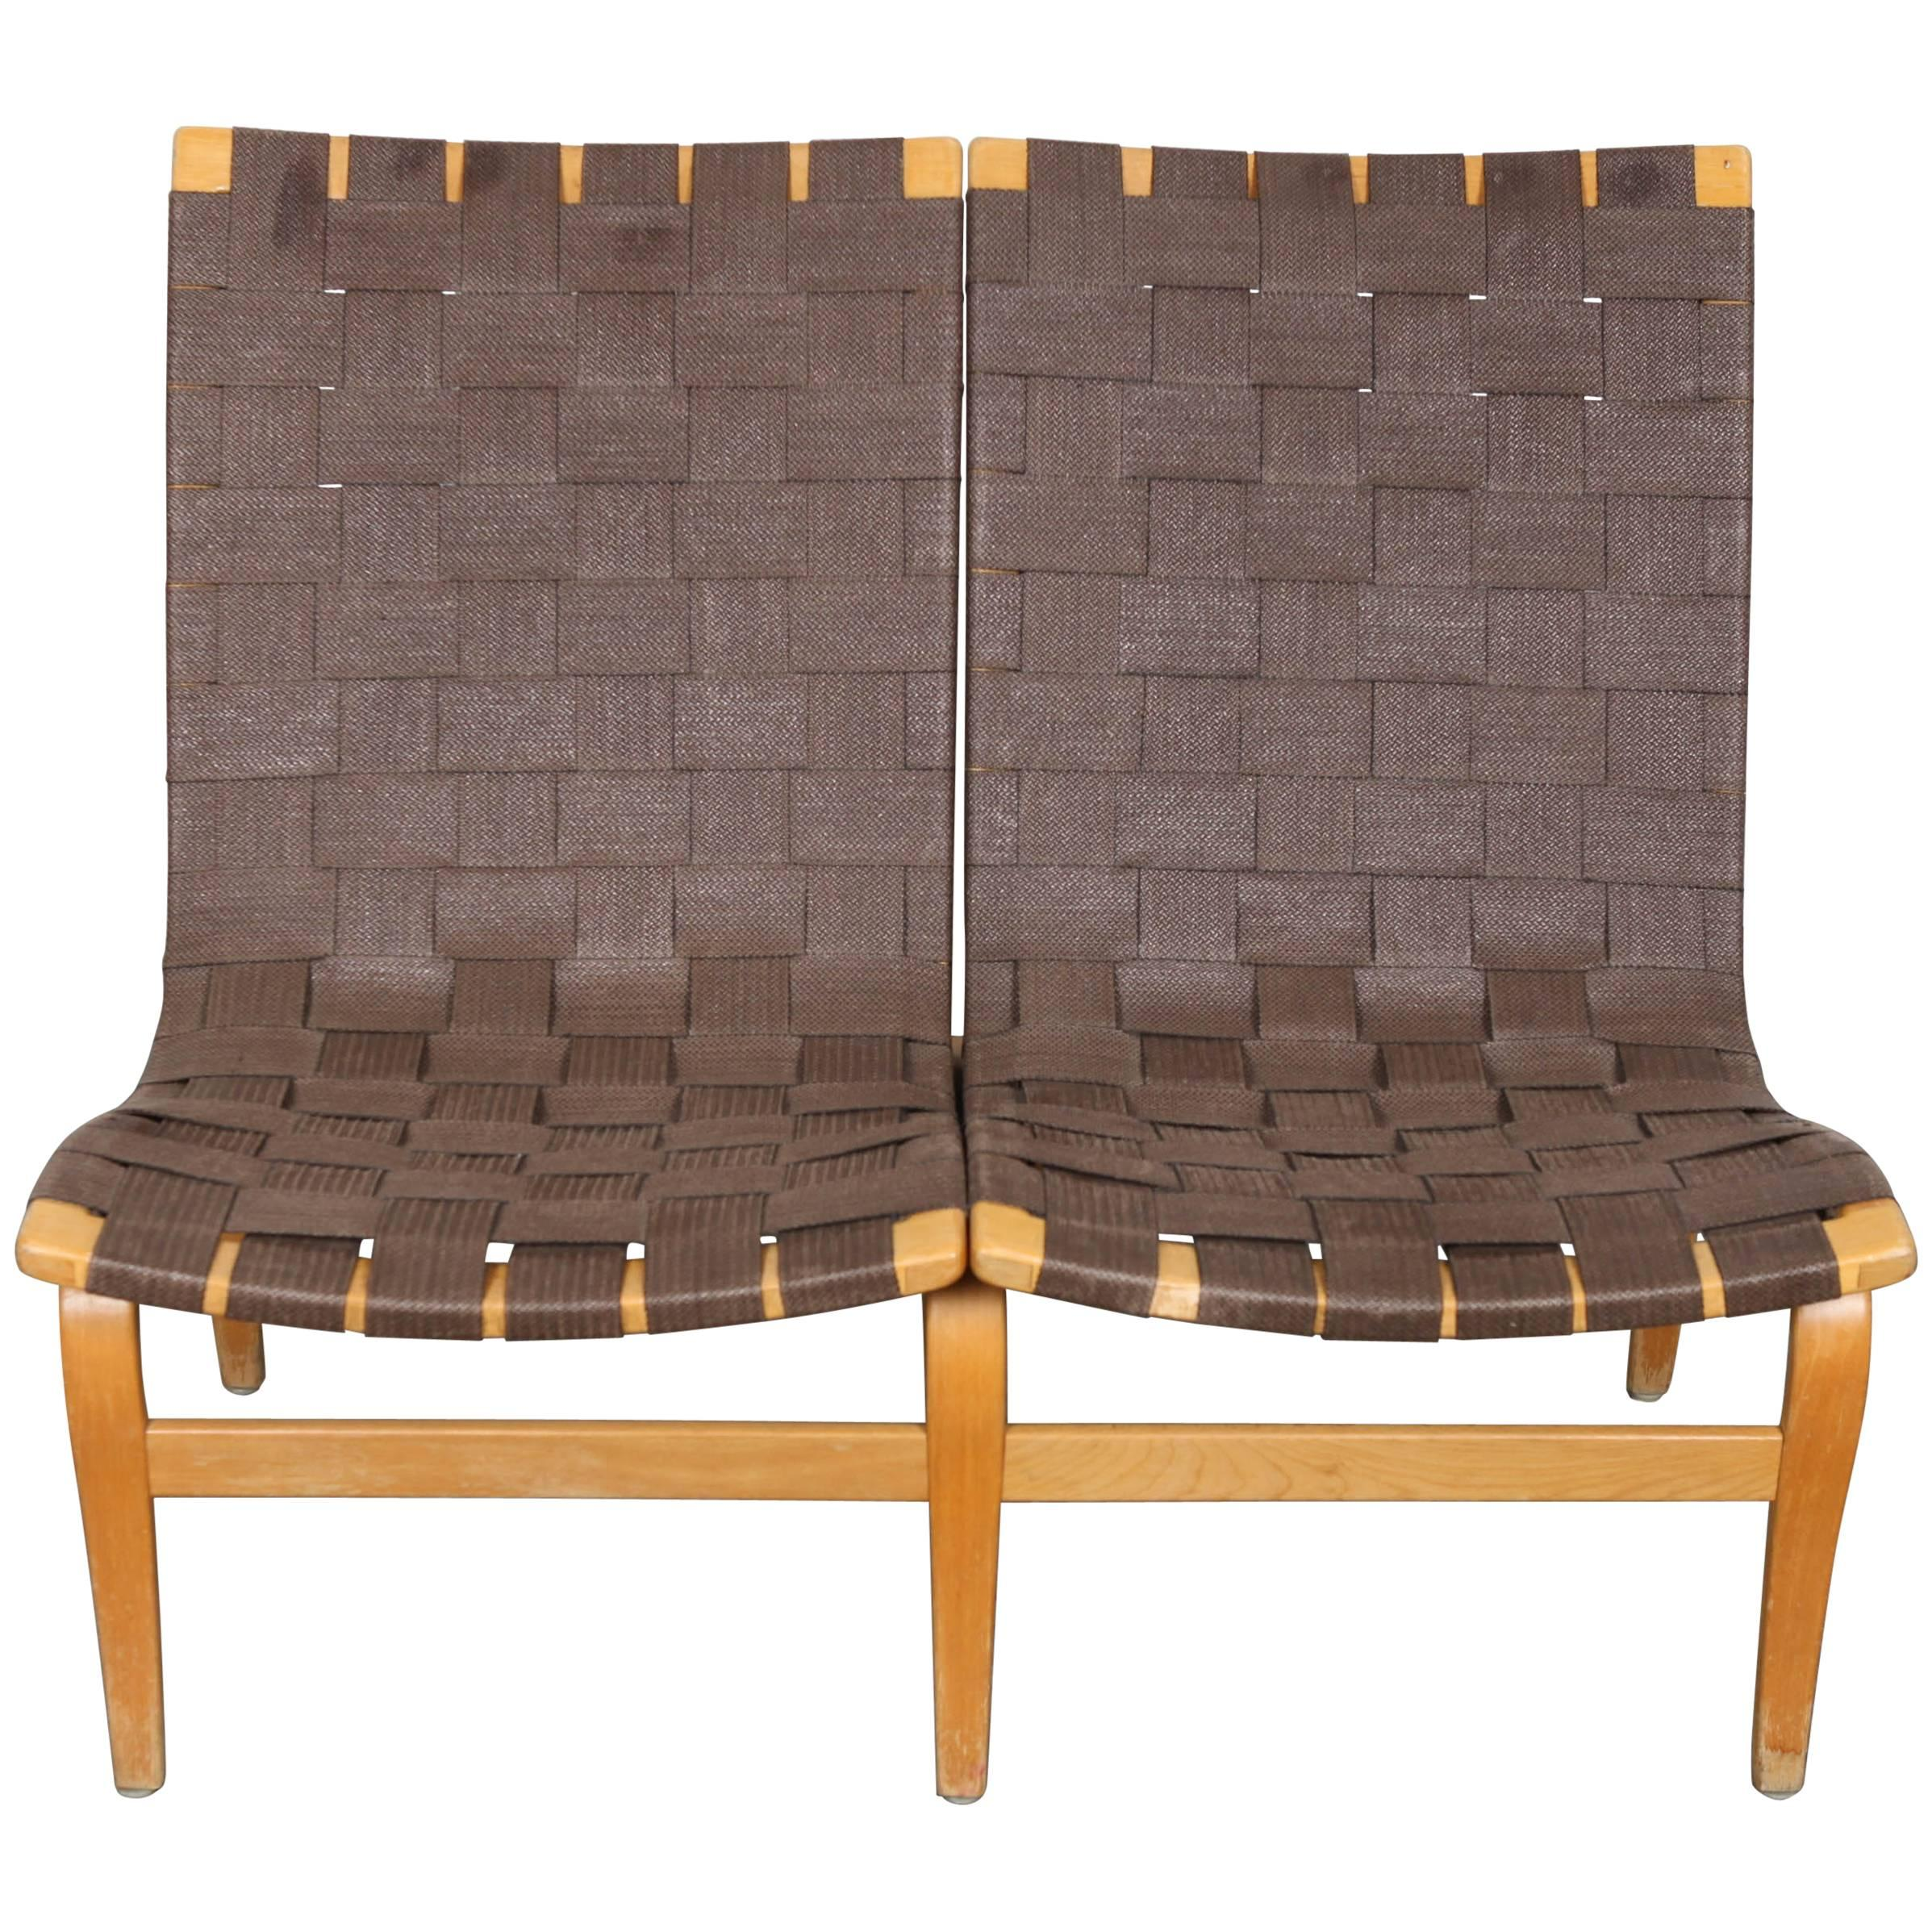 Swedish Mid Century Furniture Swedish Mid Century Modern Two Seat Settee Webbed Sofa By Bruno Mathsson